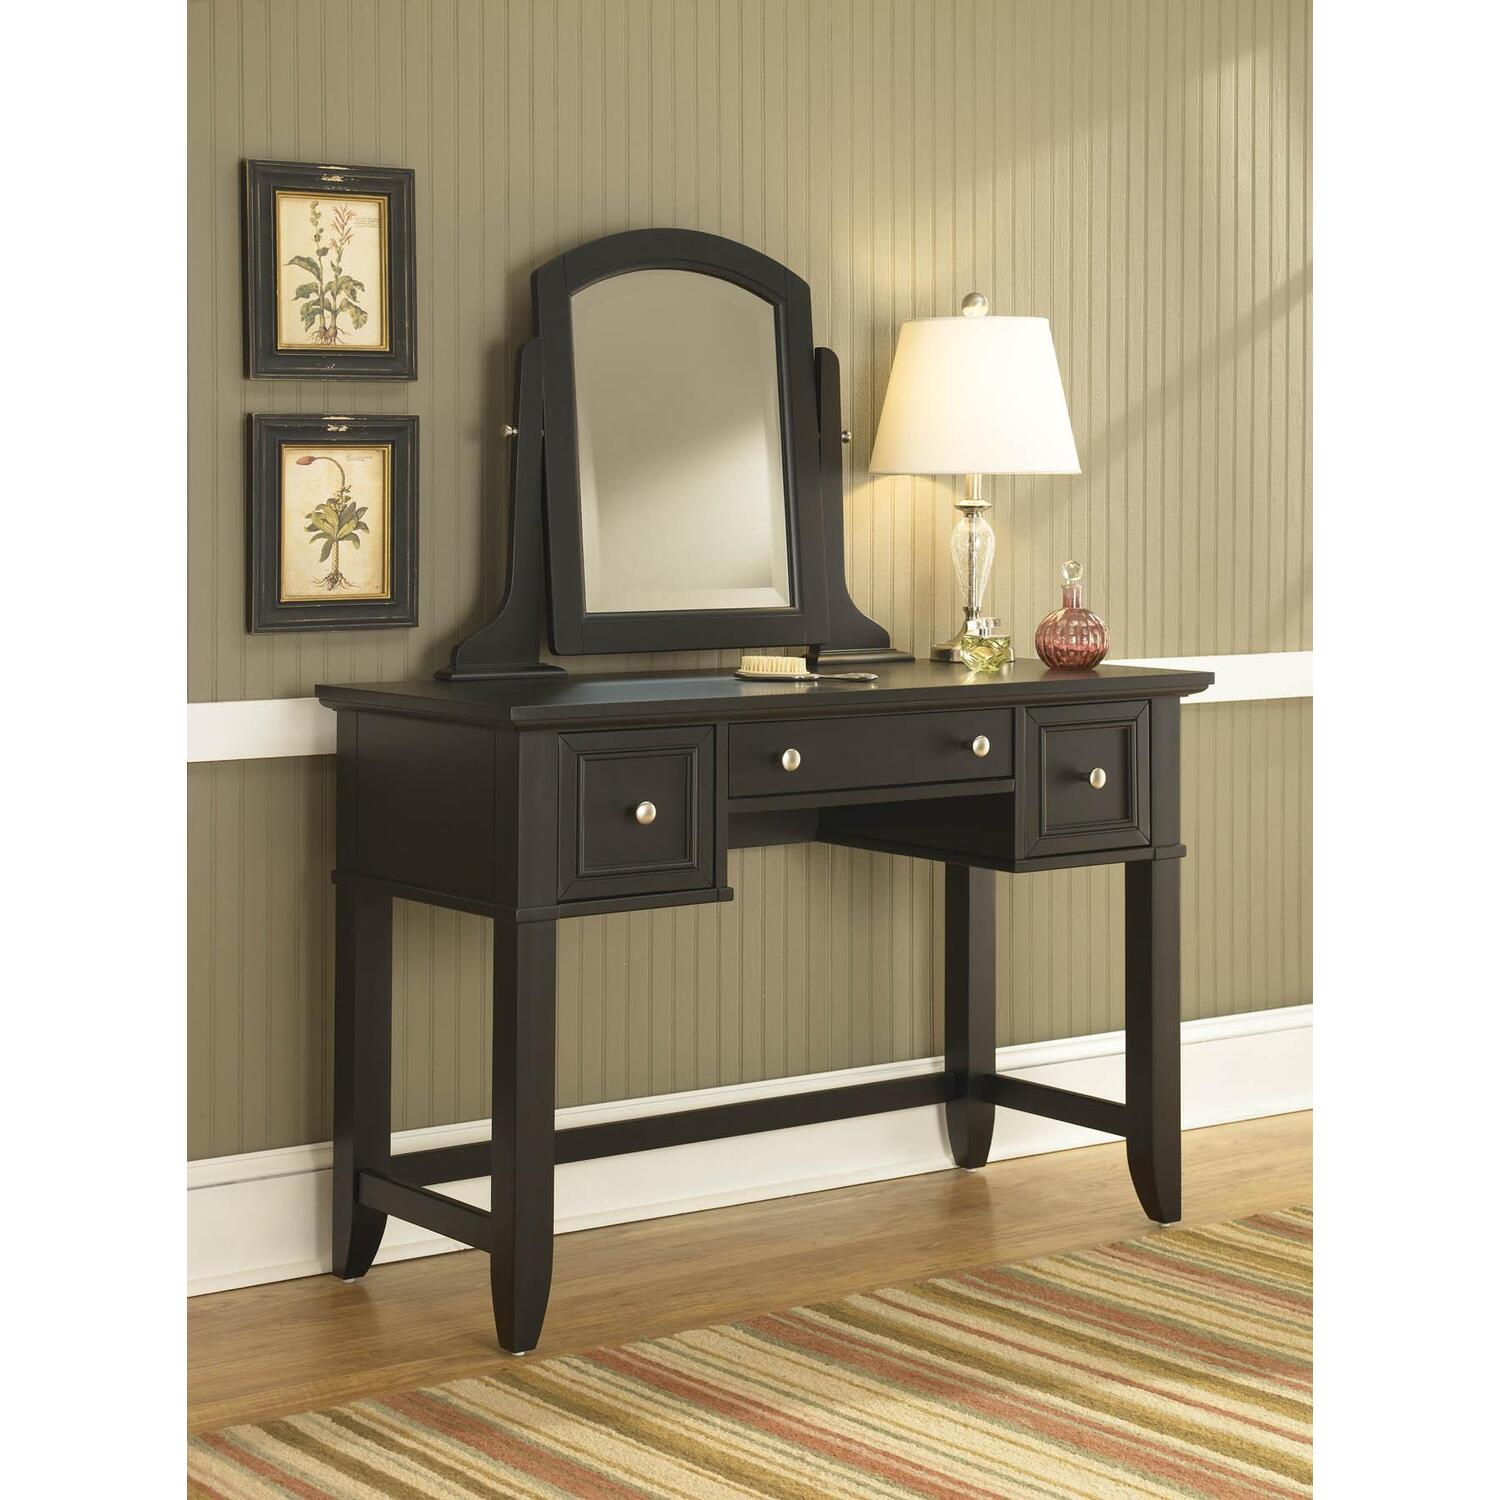 black bedroom vanity furniture home goods appliances athletic gear fitness 10855